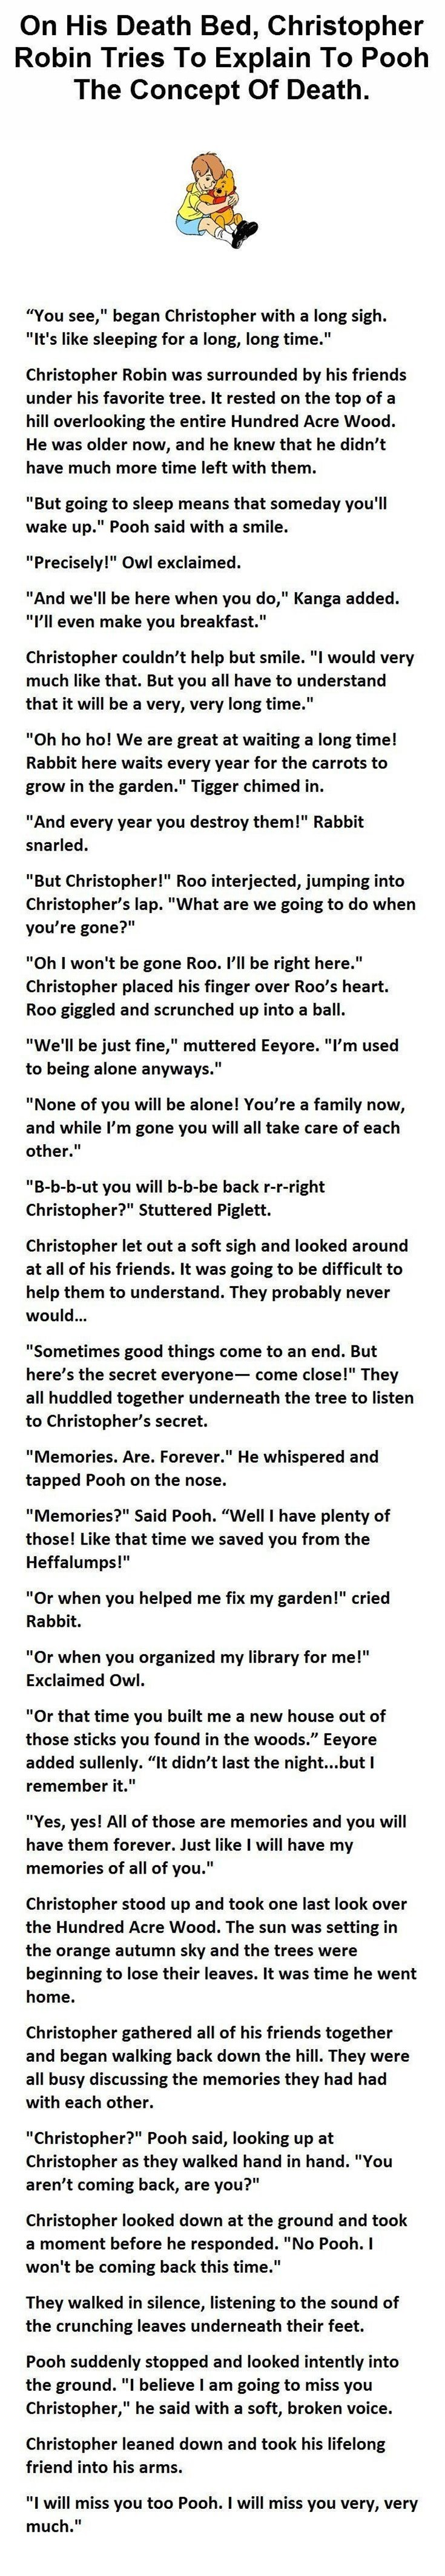 59 Winnie the Pooh Quotes Awesome Christopher Robin Quotes 32